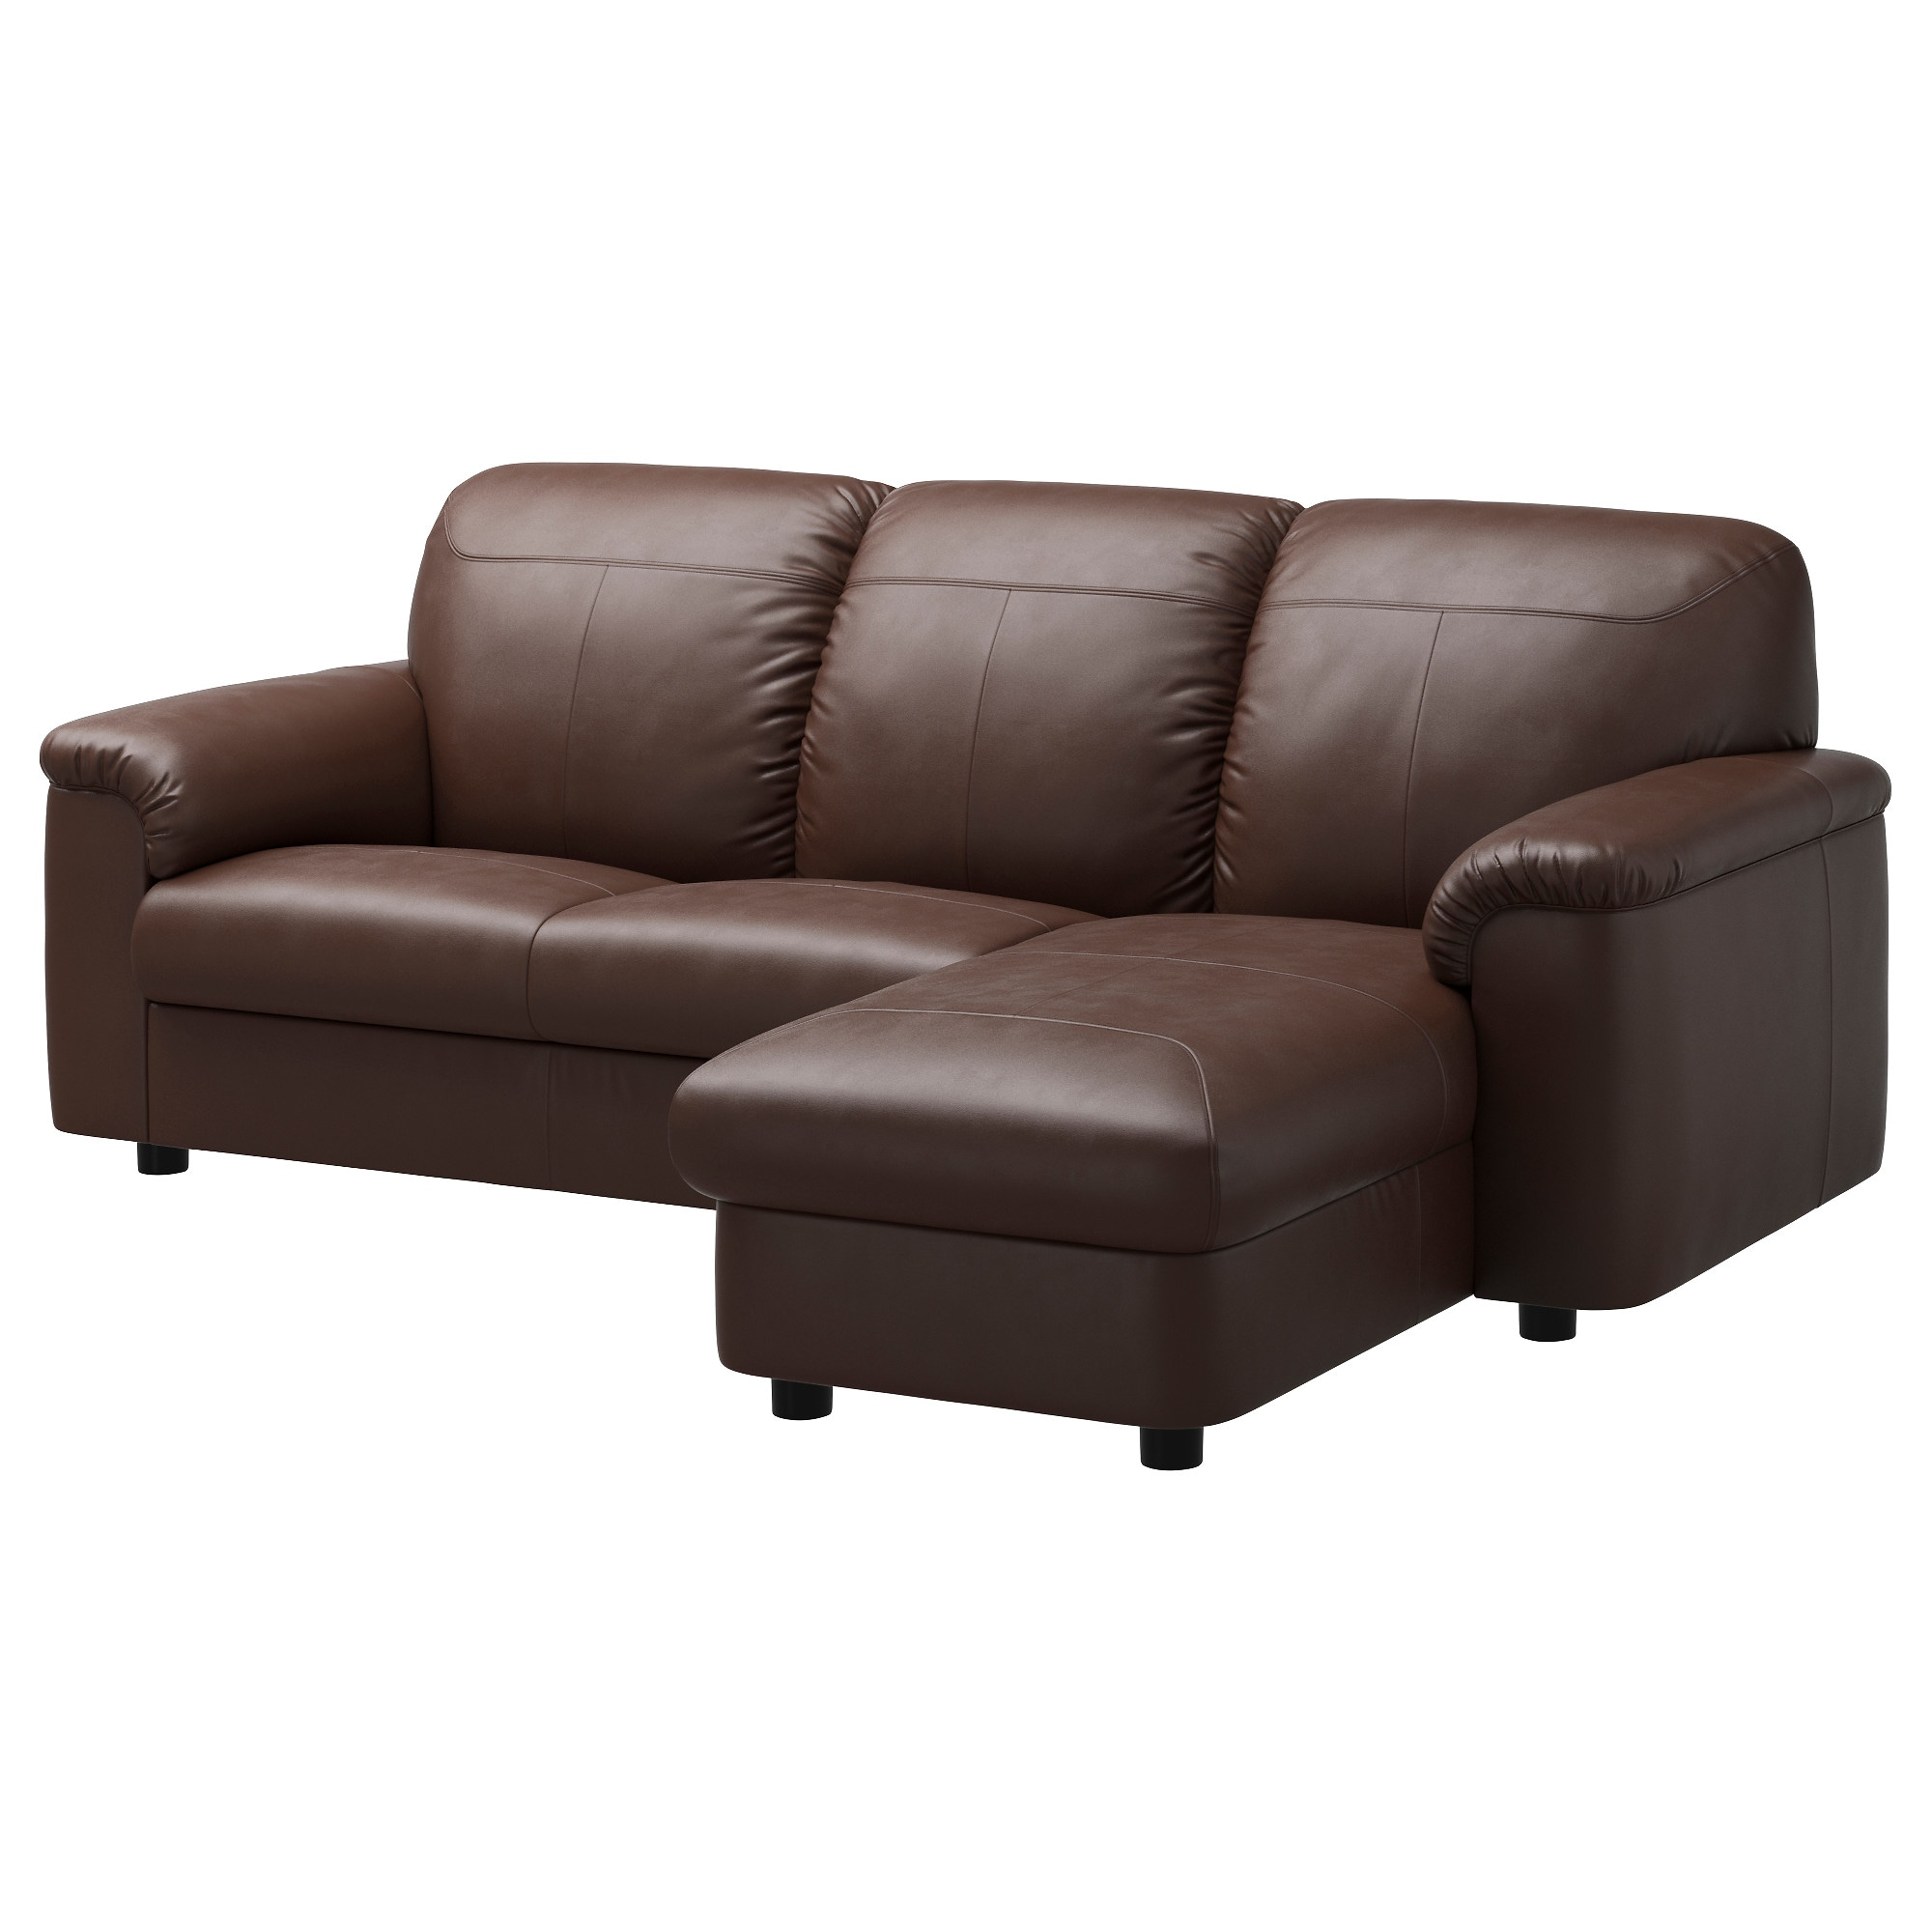 Leather & Faux Leather Couches Chairs & Ottomans IKEA